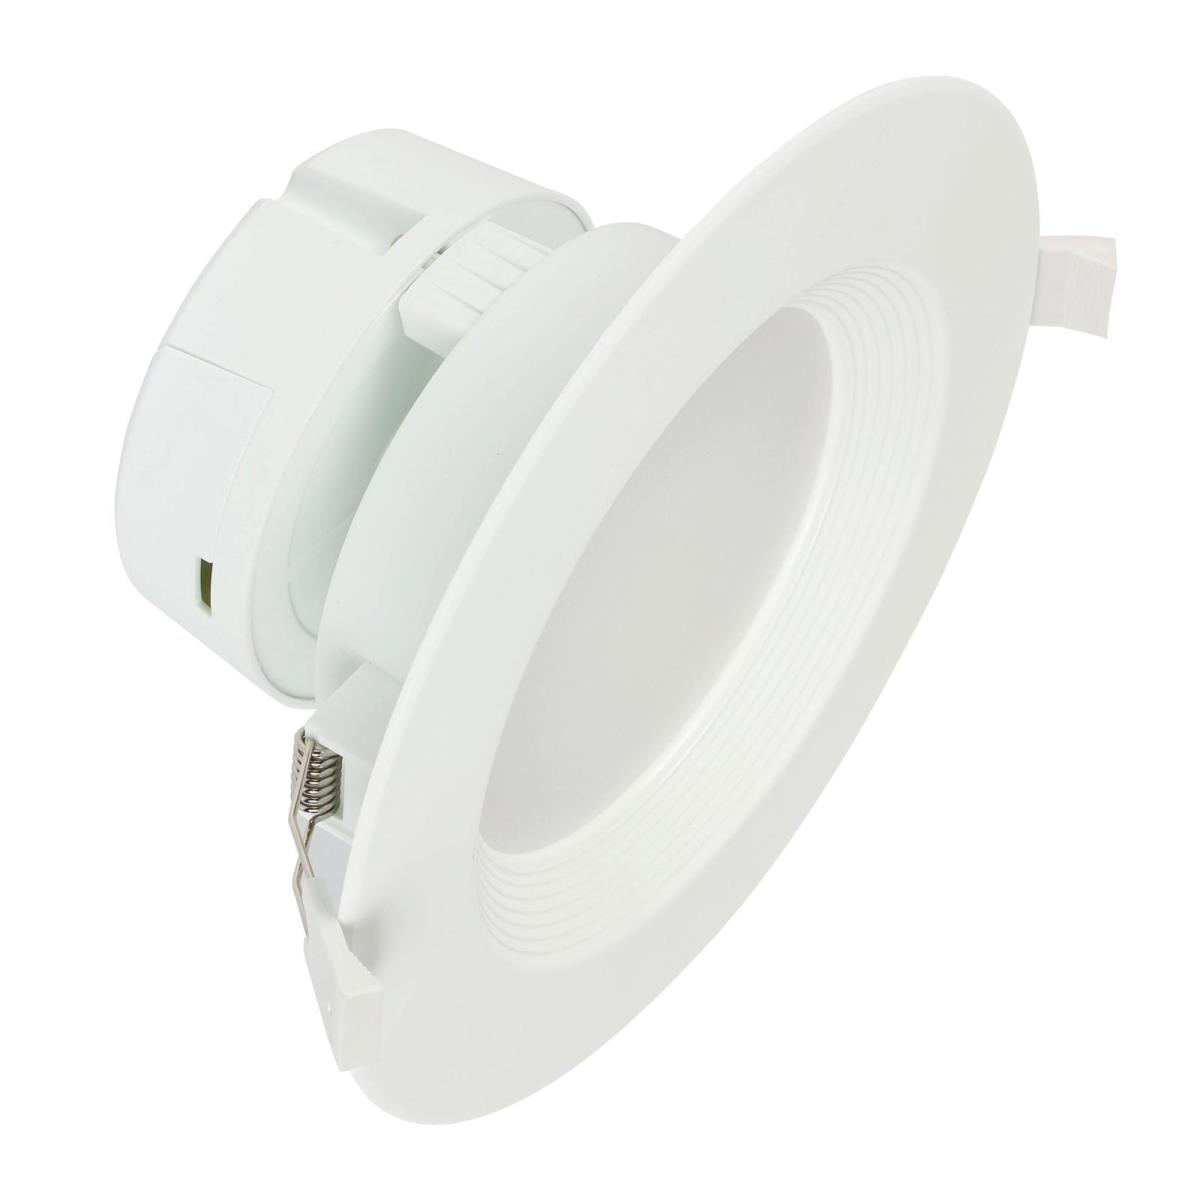 "9W Direct Wire Recessed LED Downlight 6"" Dimmable 4000K, 120 Volt, Box"